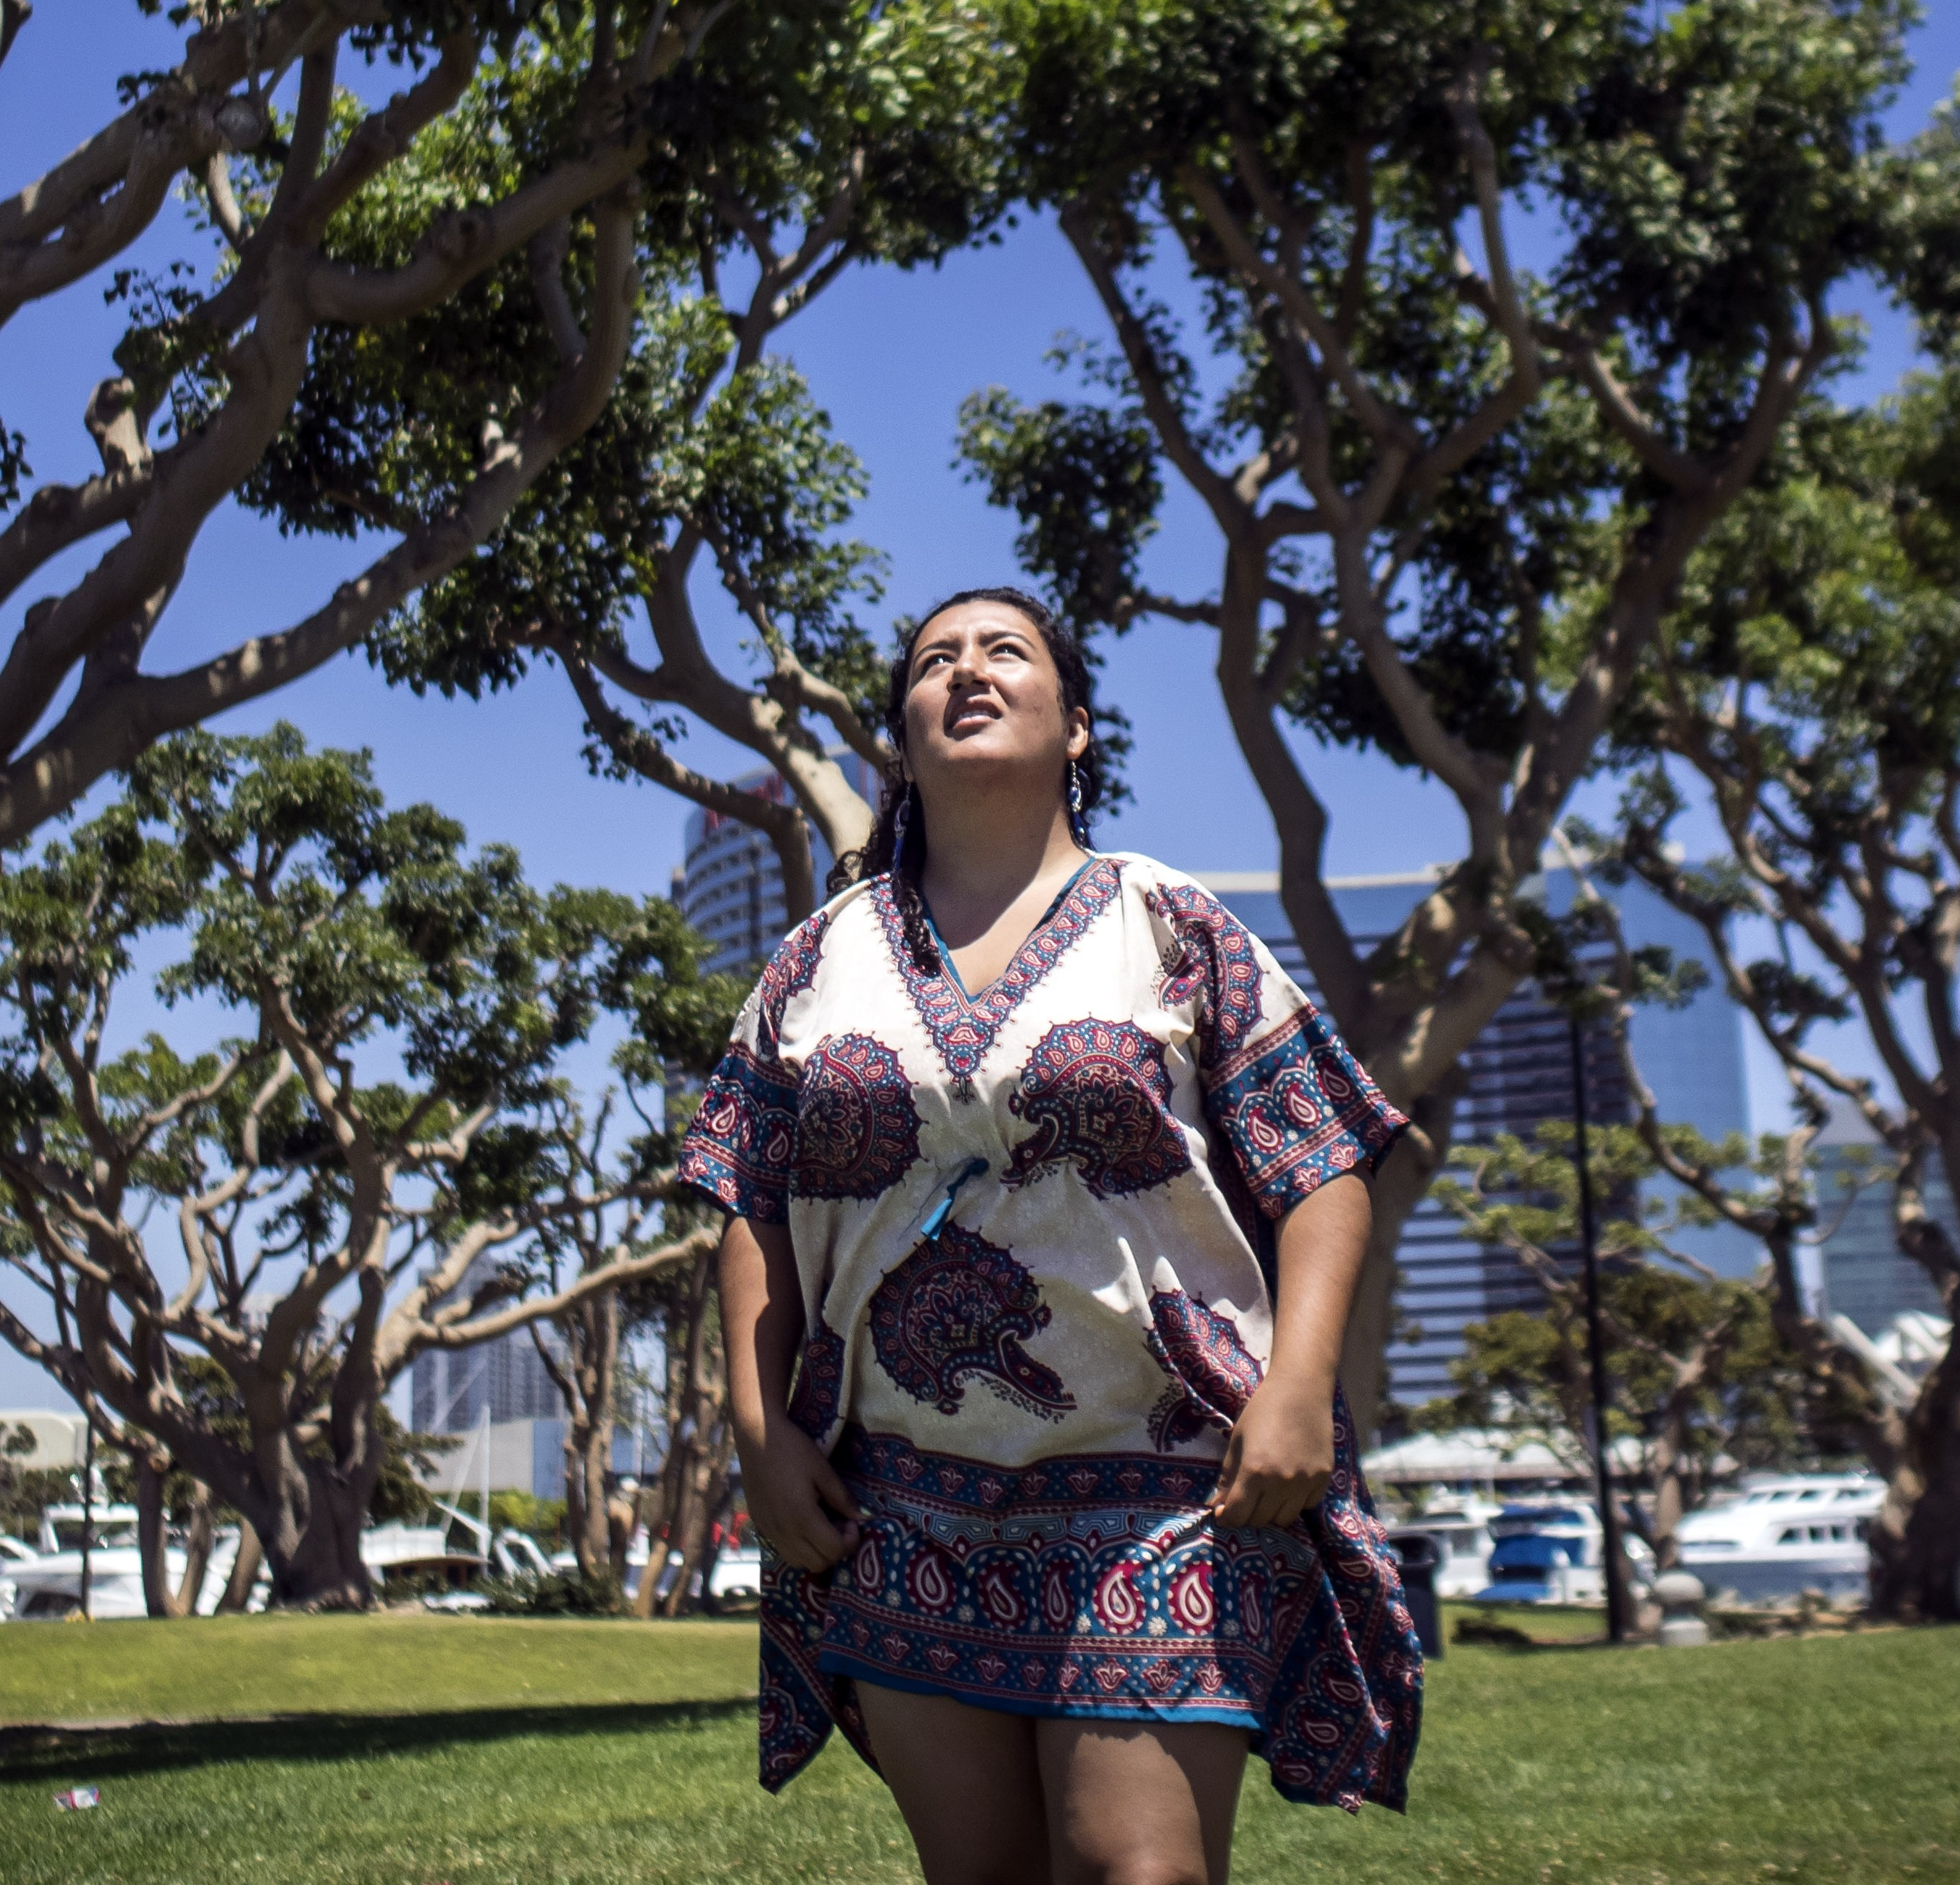 Jasmin heads out to the beach in San Diego on a windy day, to fly a kite. (Marvi Lacar/KQED)